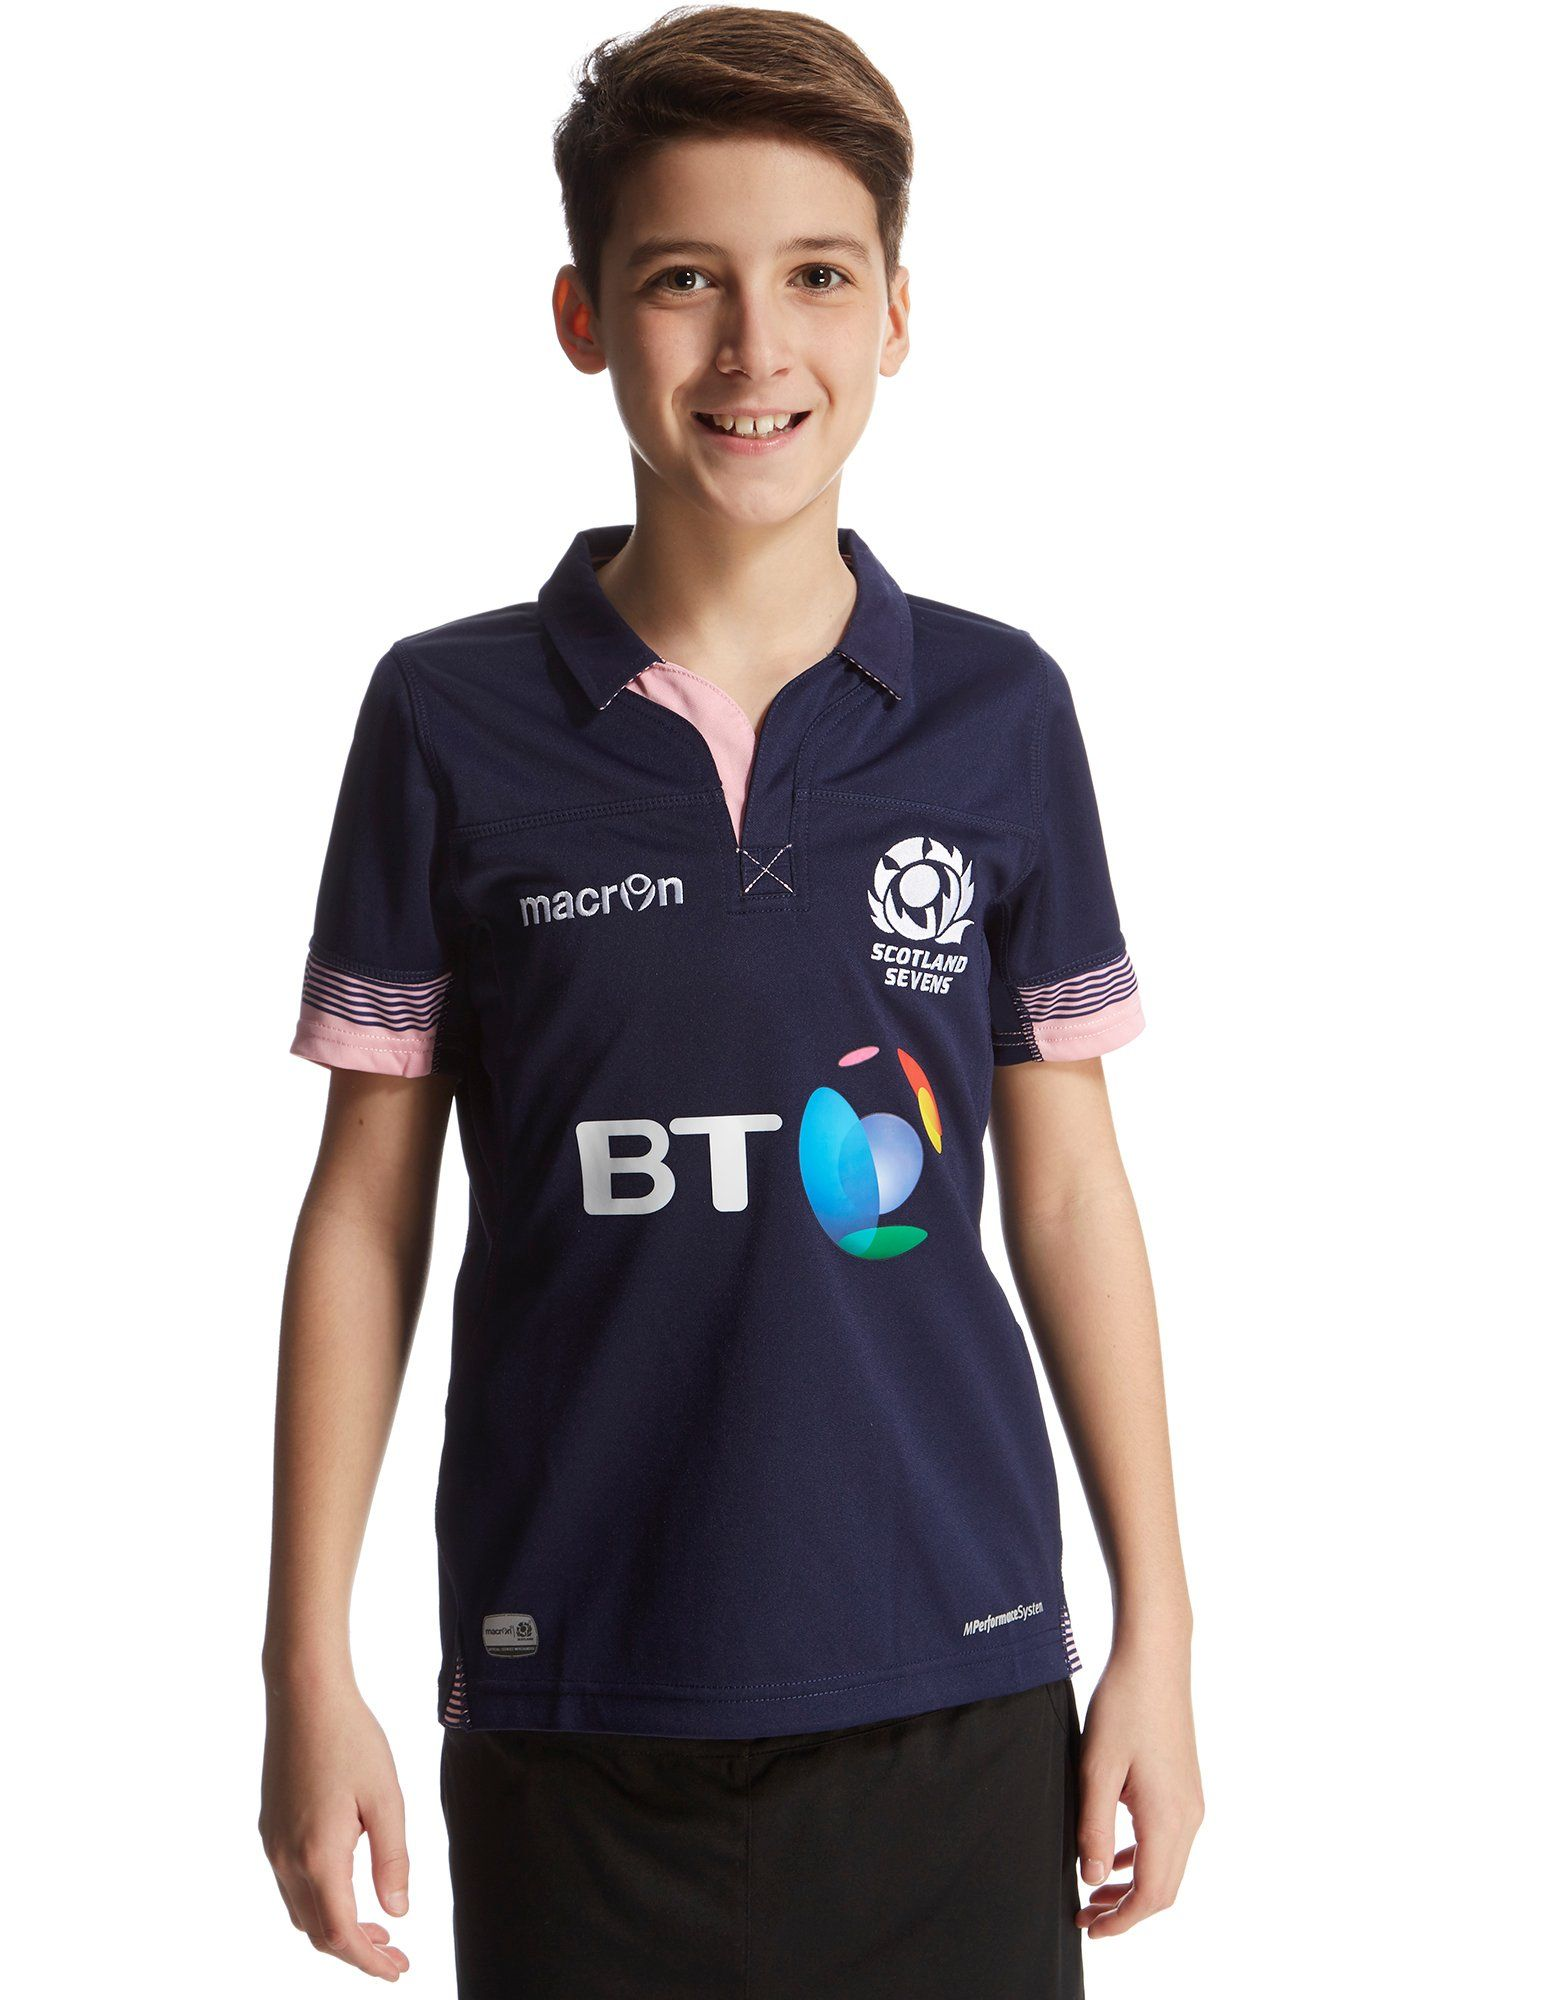 Macron Scotland RFU Home 2015/16 Sevens Shirt Junior